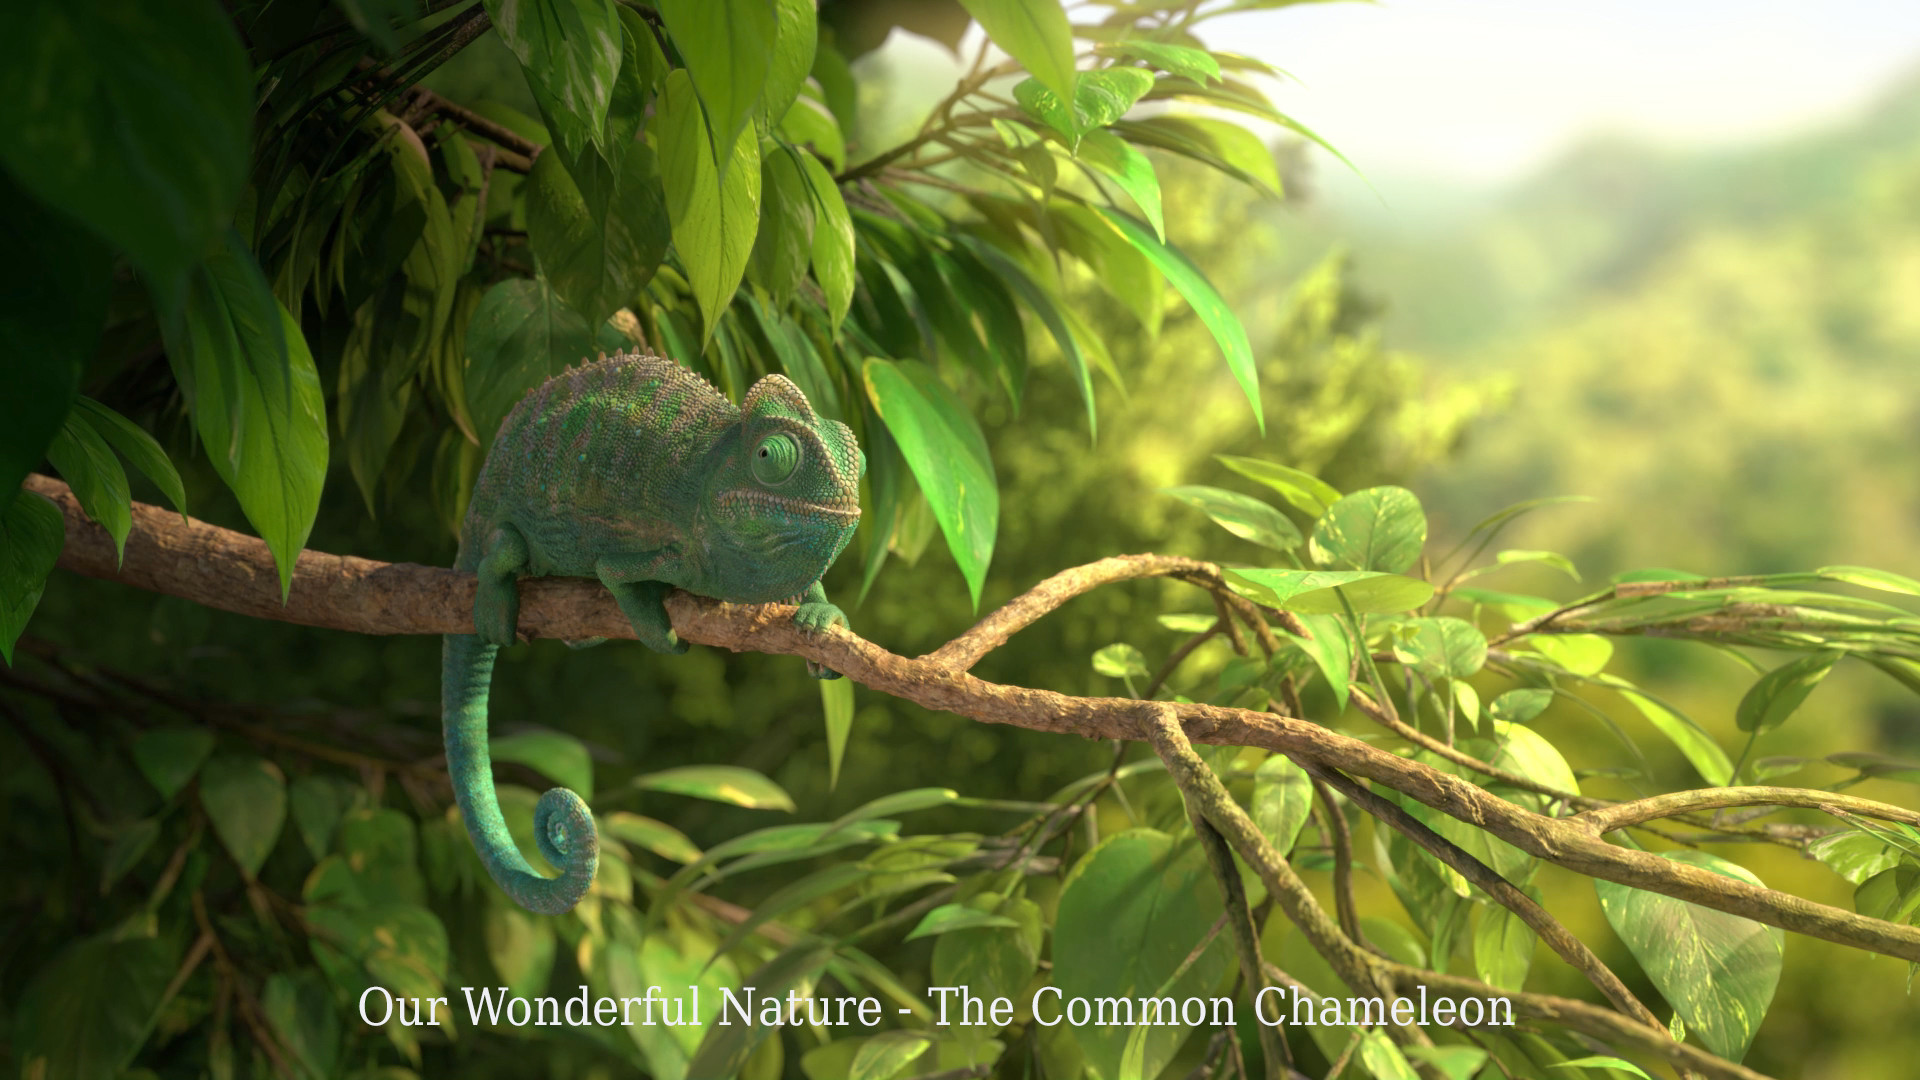 Chameleon Style Our Wonderful Nature The Common Chameleon